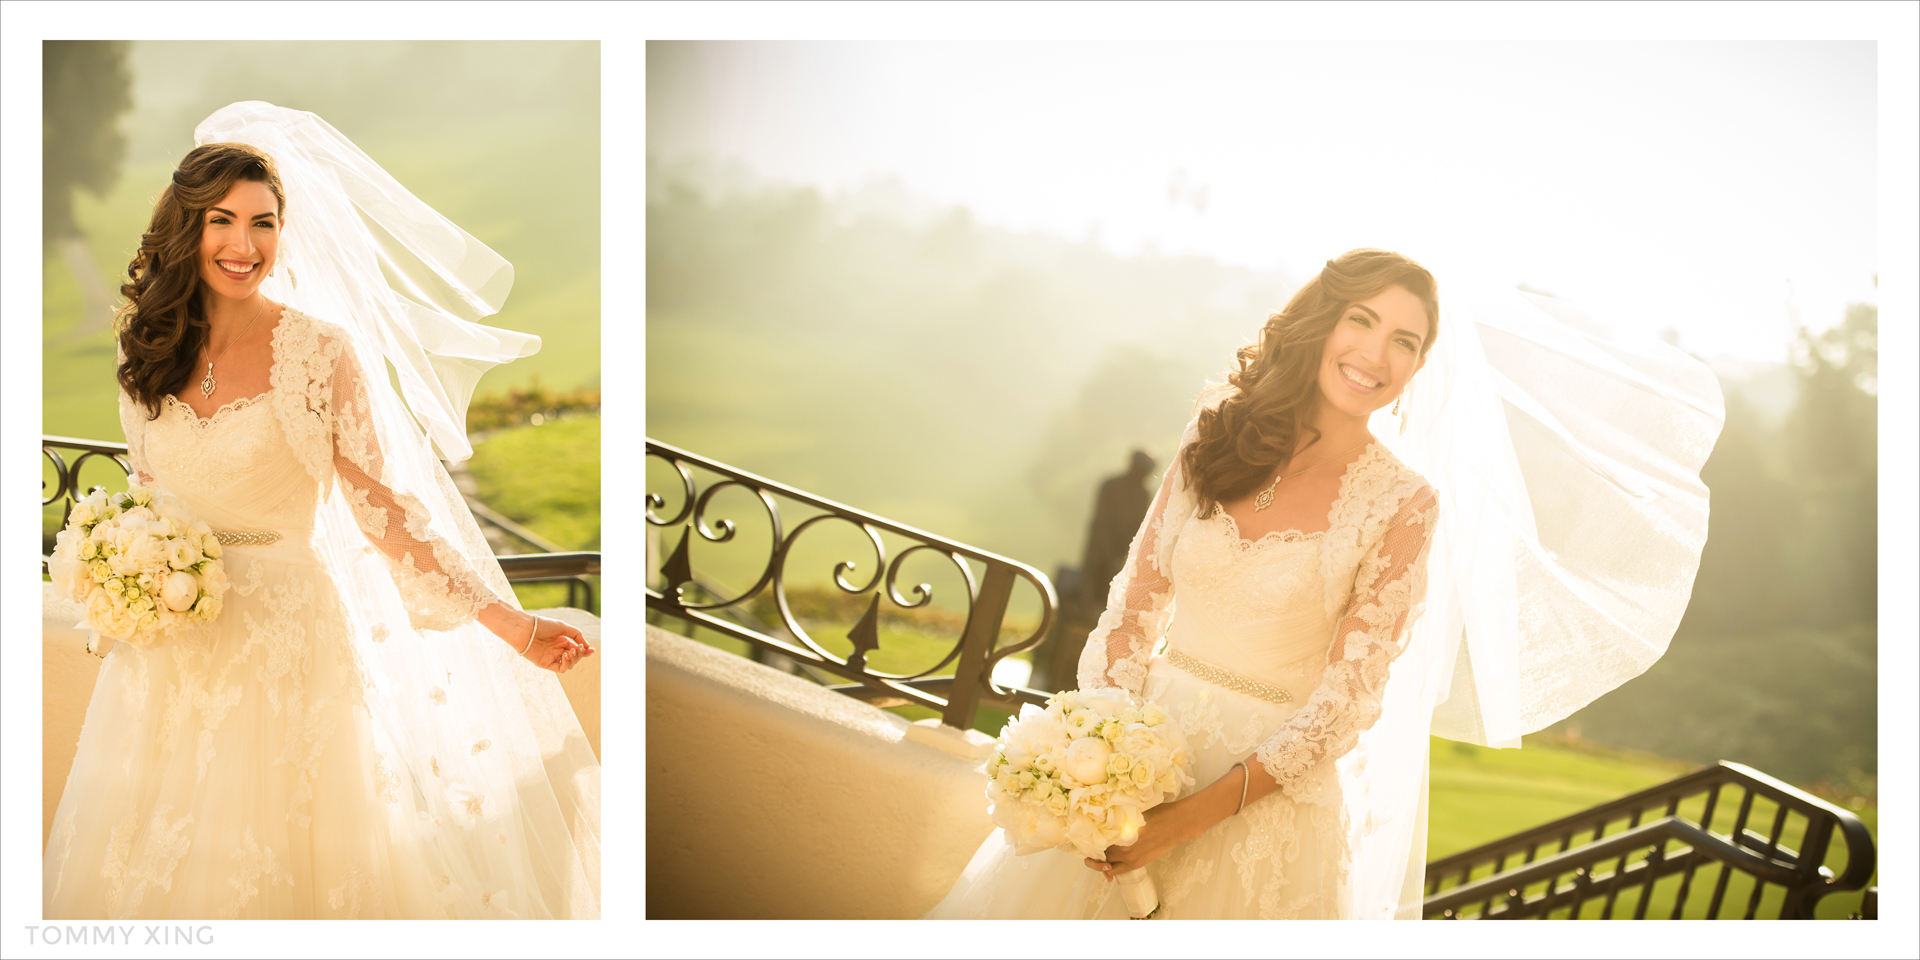 Los Angeles Jewishg Wedding at Riviera Country Club in Pacific Palisades 洛杉矶婚礼婚纱摄影师  Tommy Xing Photography 19.jpg